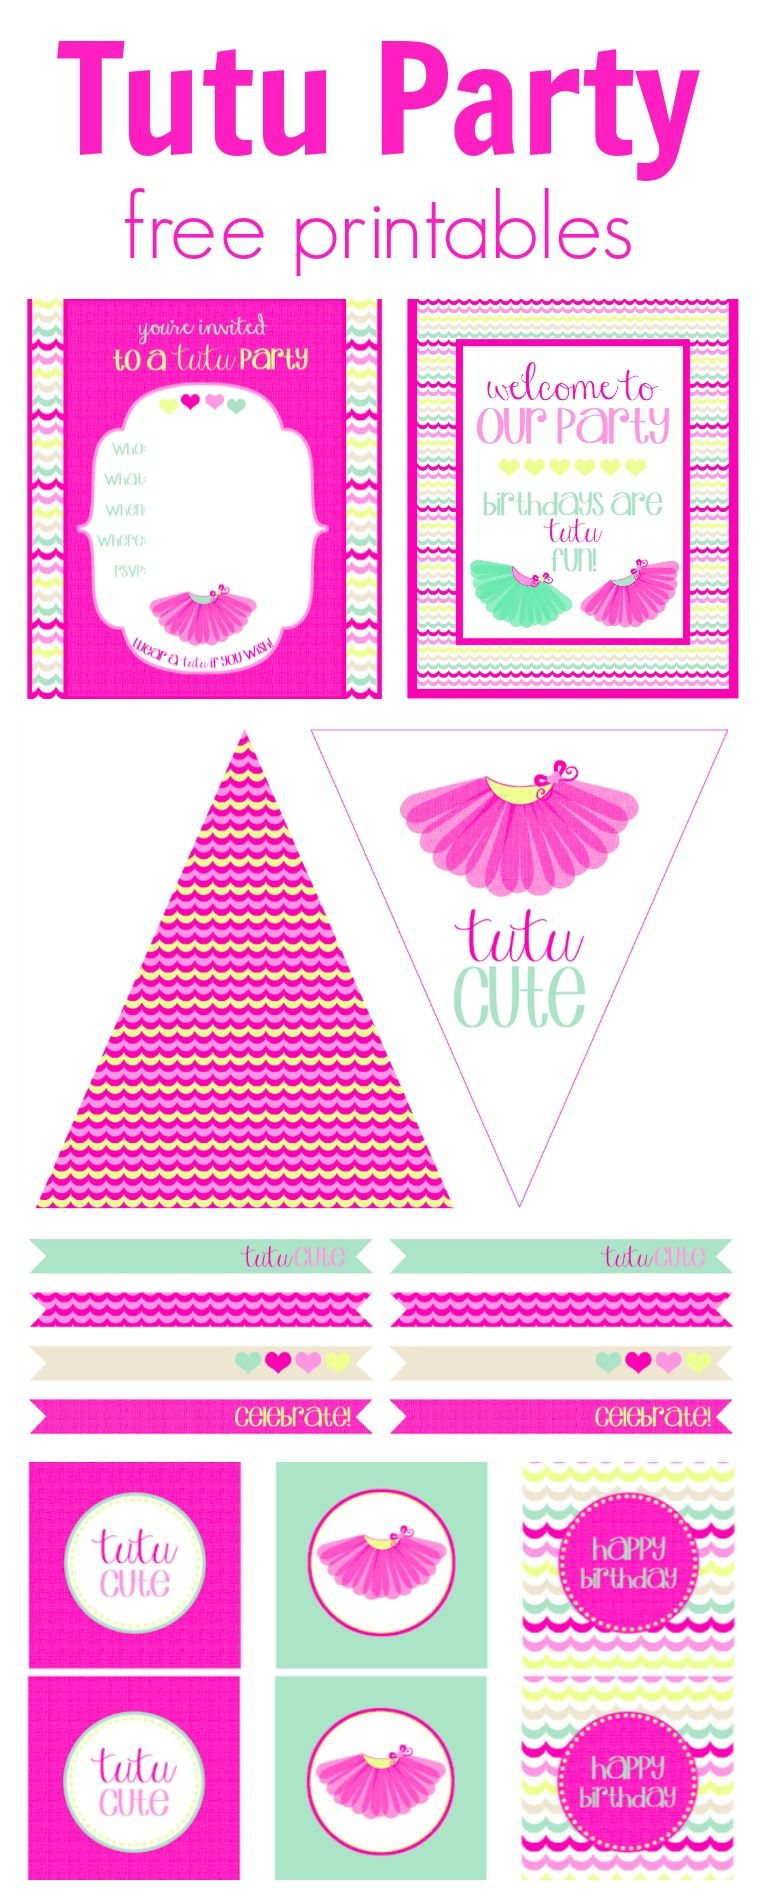 tutu party free printables perfect birthday or playdate theme 3